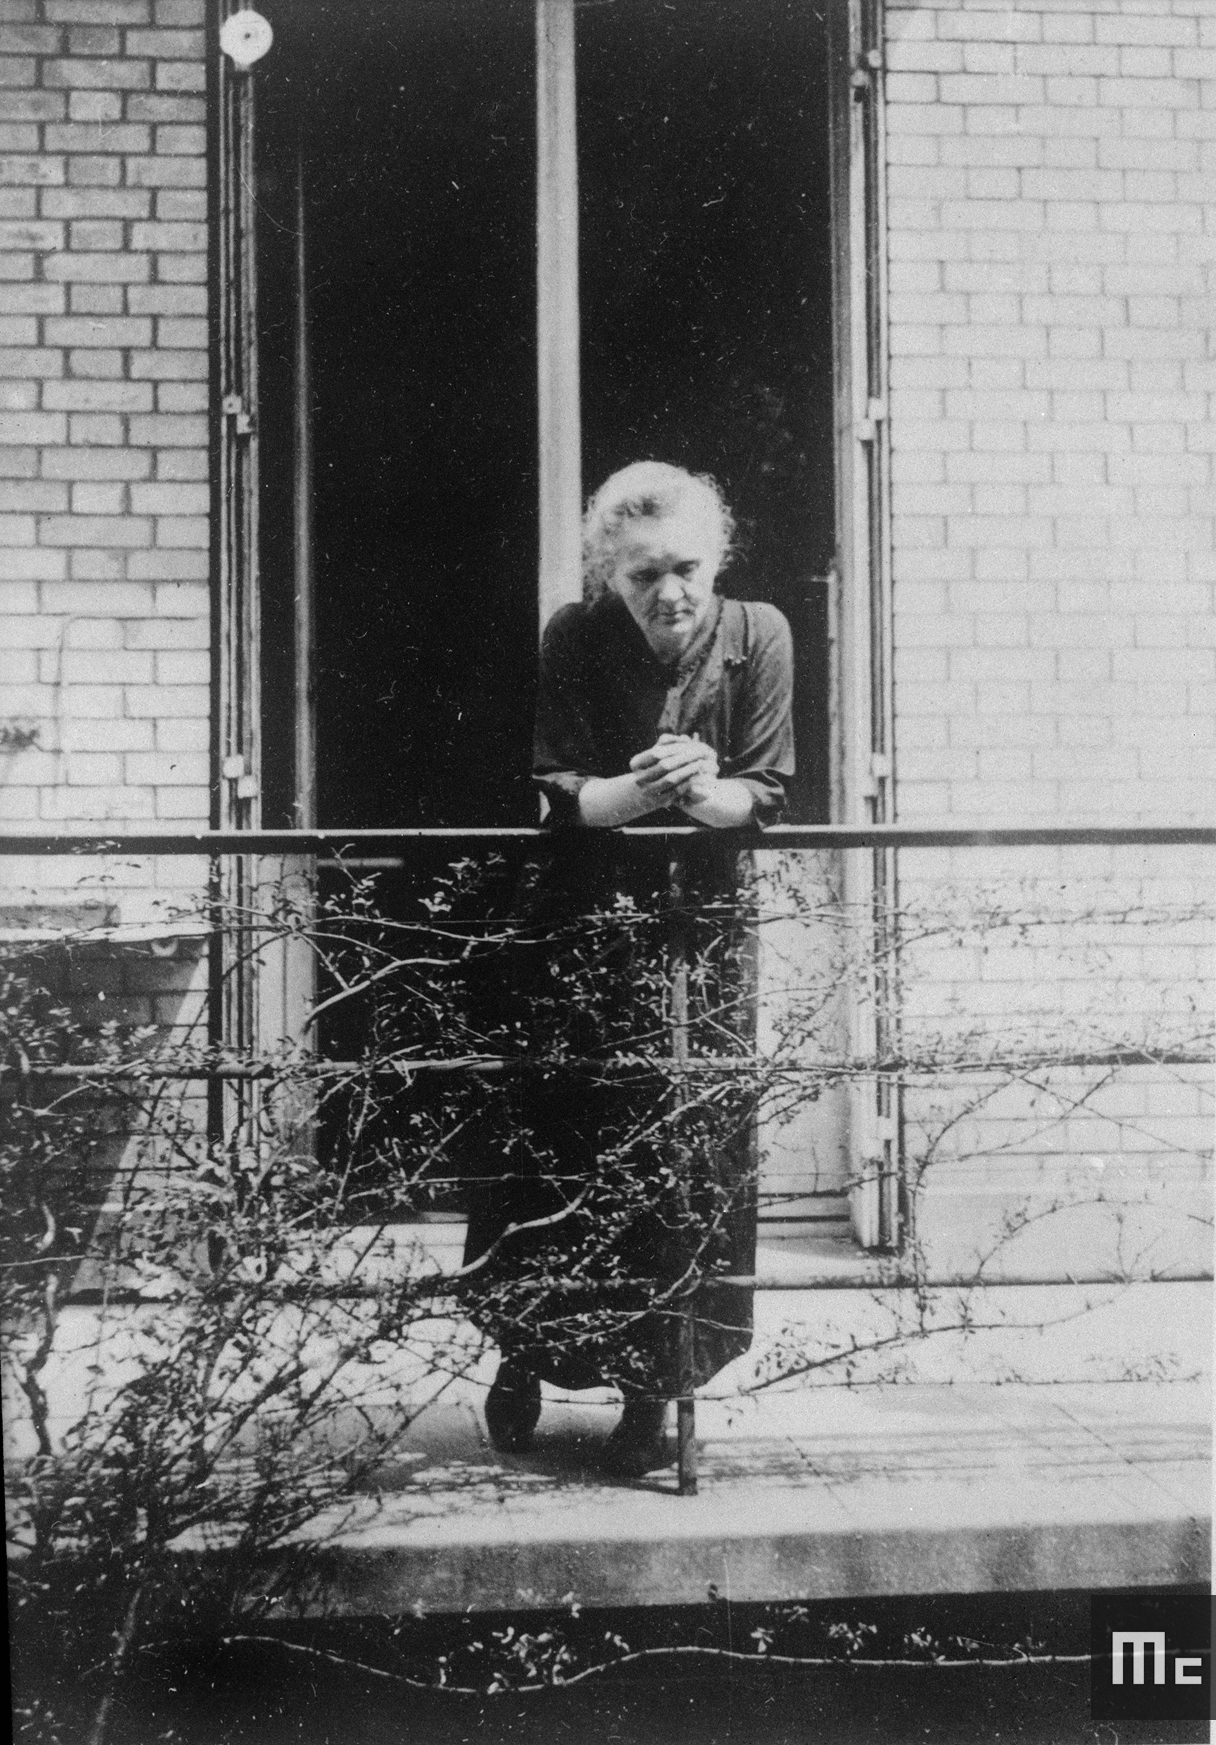 Marie Curie on the patio of the Curie Pavilion at the Radium Institute, outside her personal chemistry laboratory in 1923 (Source: Musée Curie; coll. ACJC)